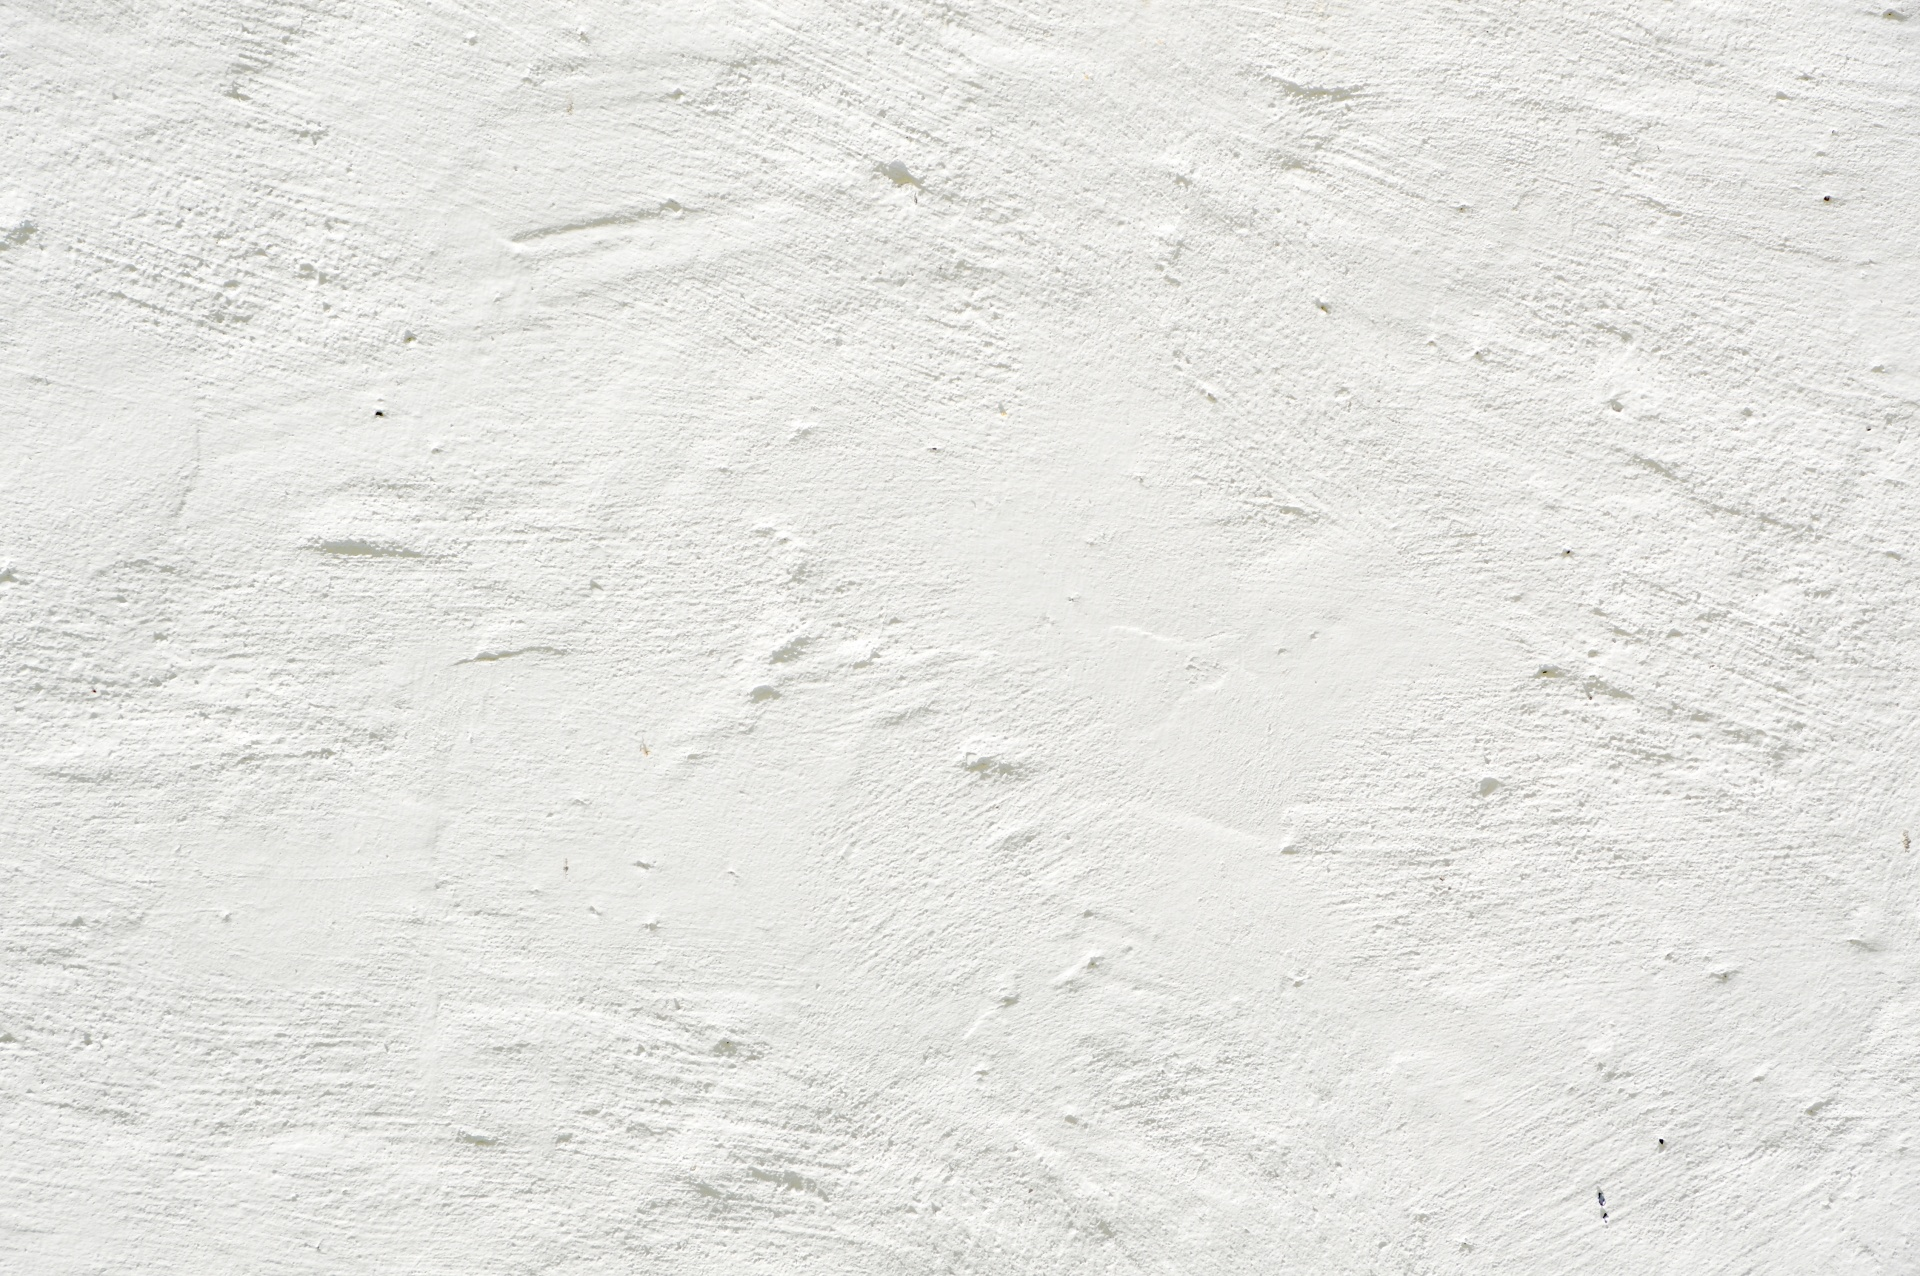 White Wall Texture Background Free Stock Photo - Public Domain Pictures